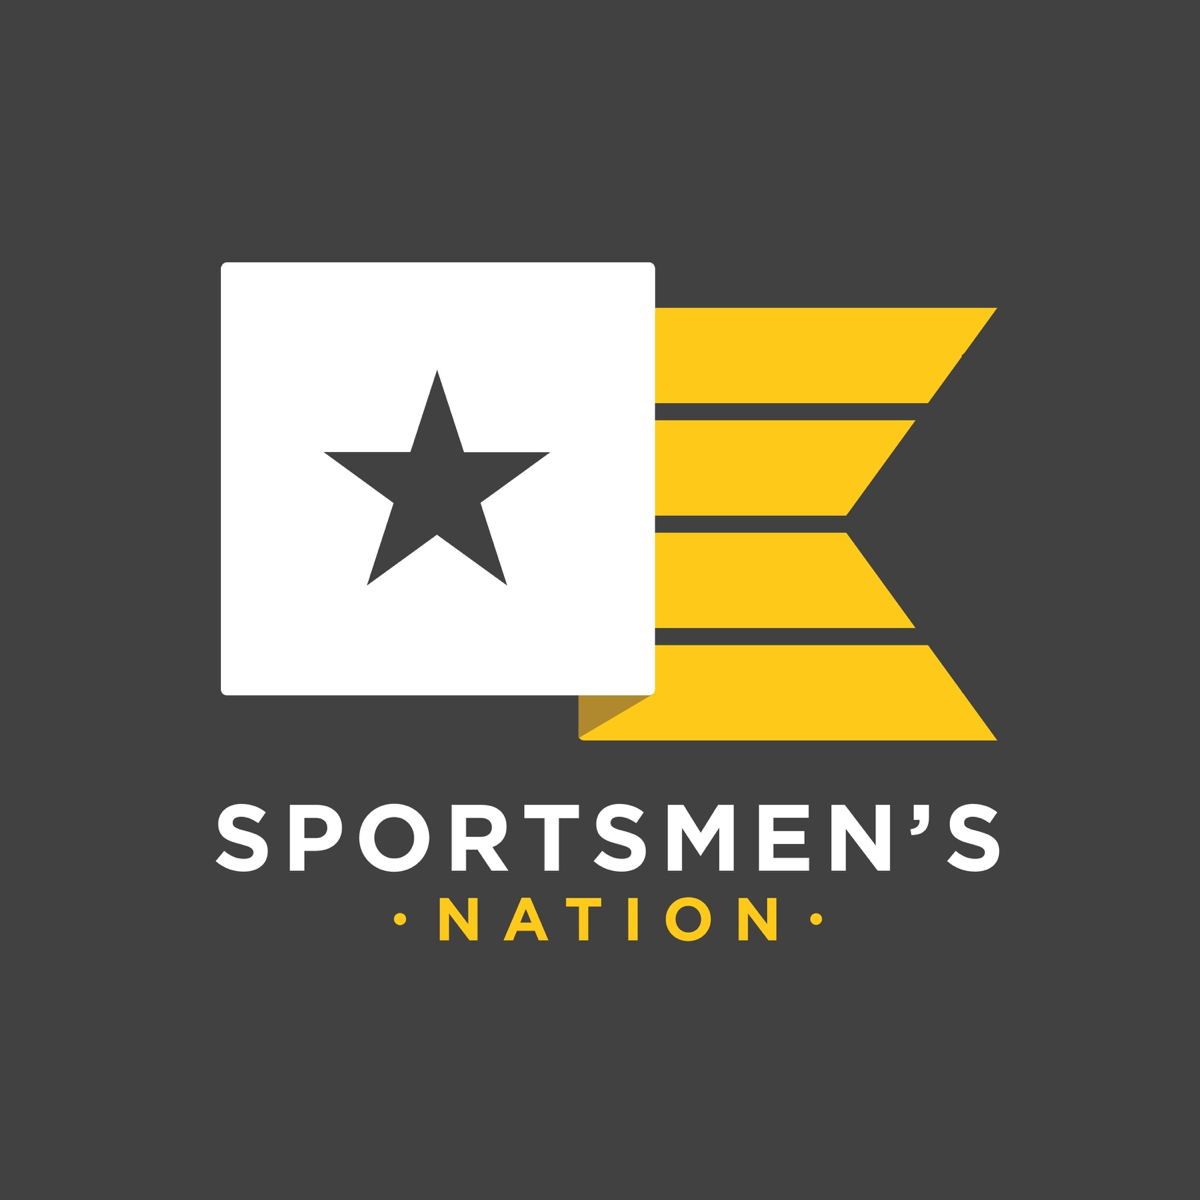 Best episodes of Sportsmen's Nation - Whitetail Hunting